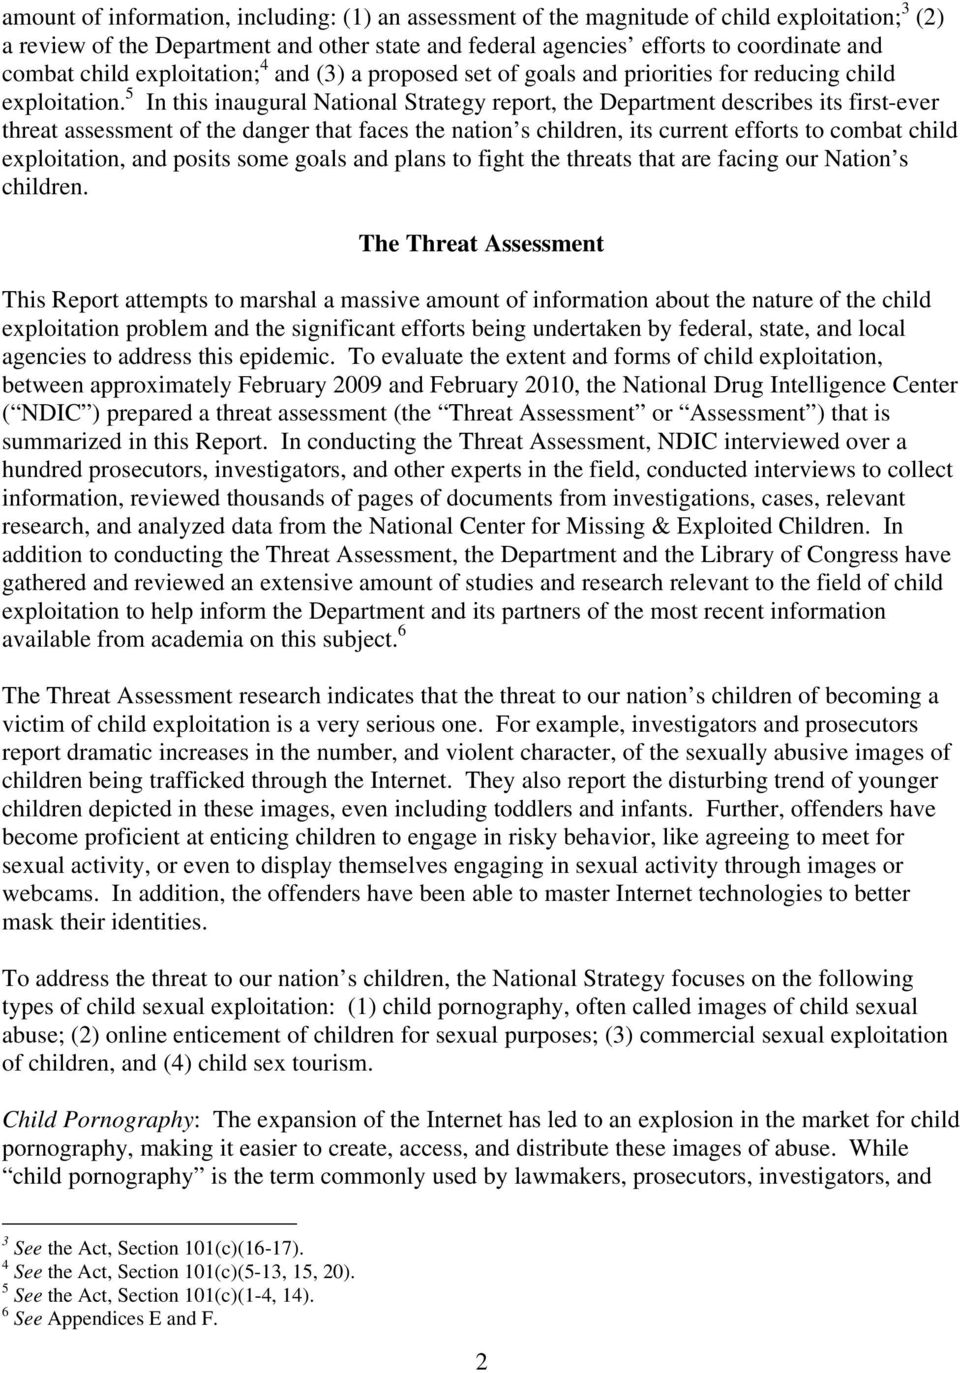 5 In this inaugural National Strategy report, the Department describes its first-ever threat assessment of the danger that faces the nation s children, its current efforts to combat child